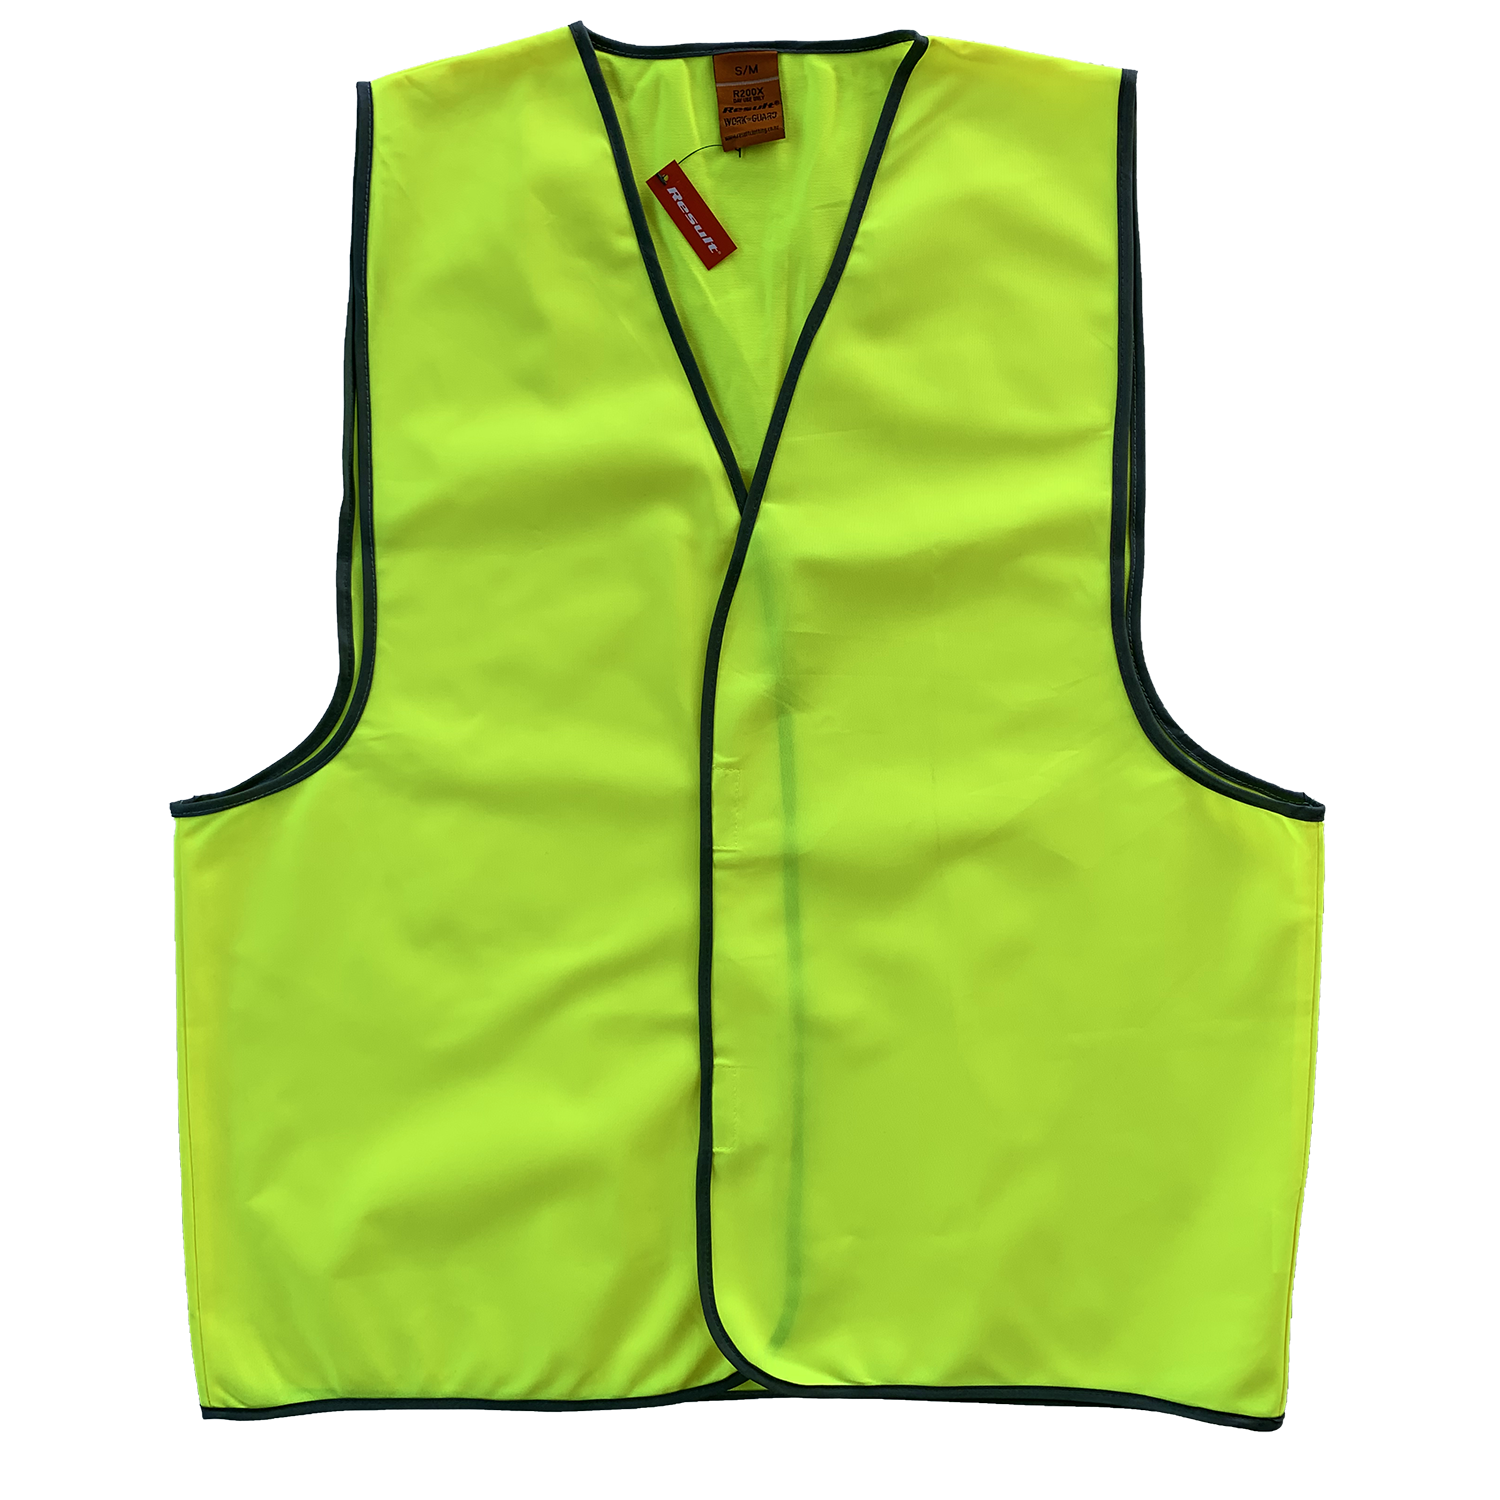 Work-Guard Hi Vis Safety Vests